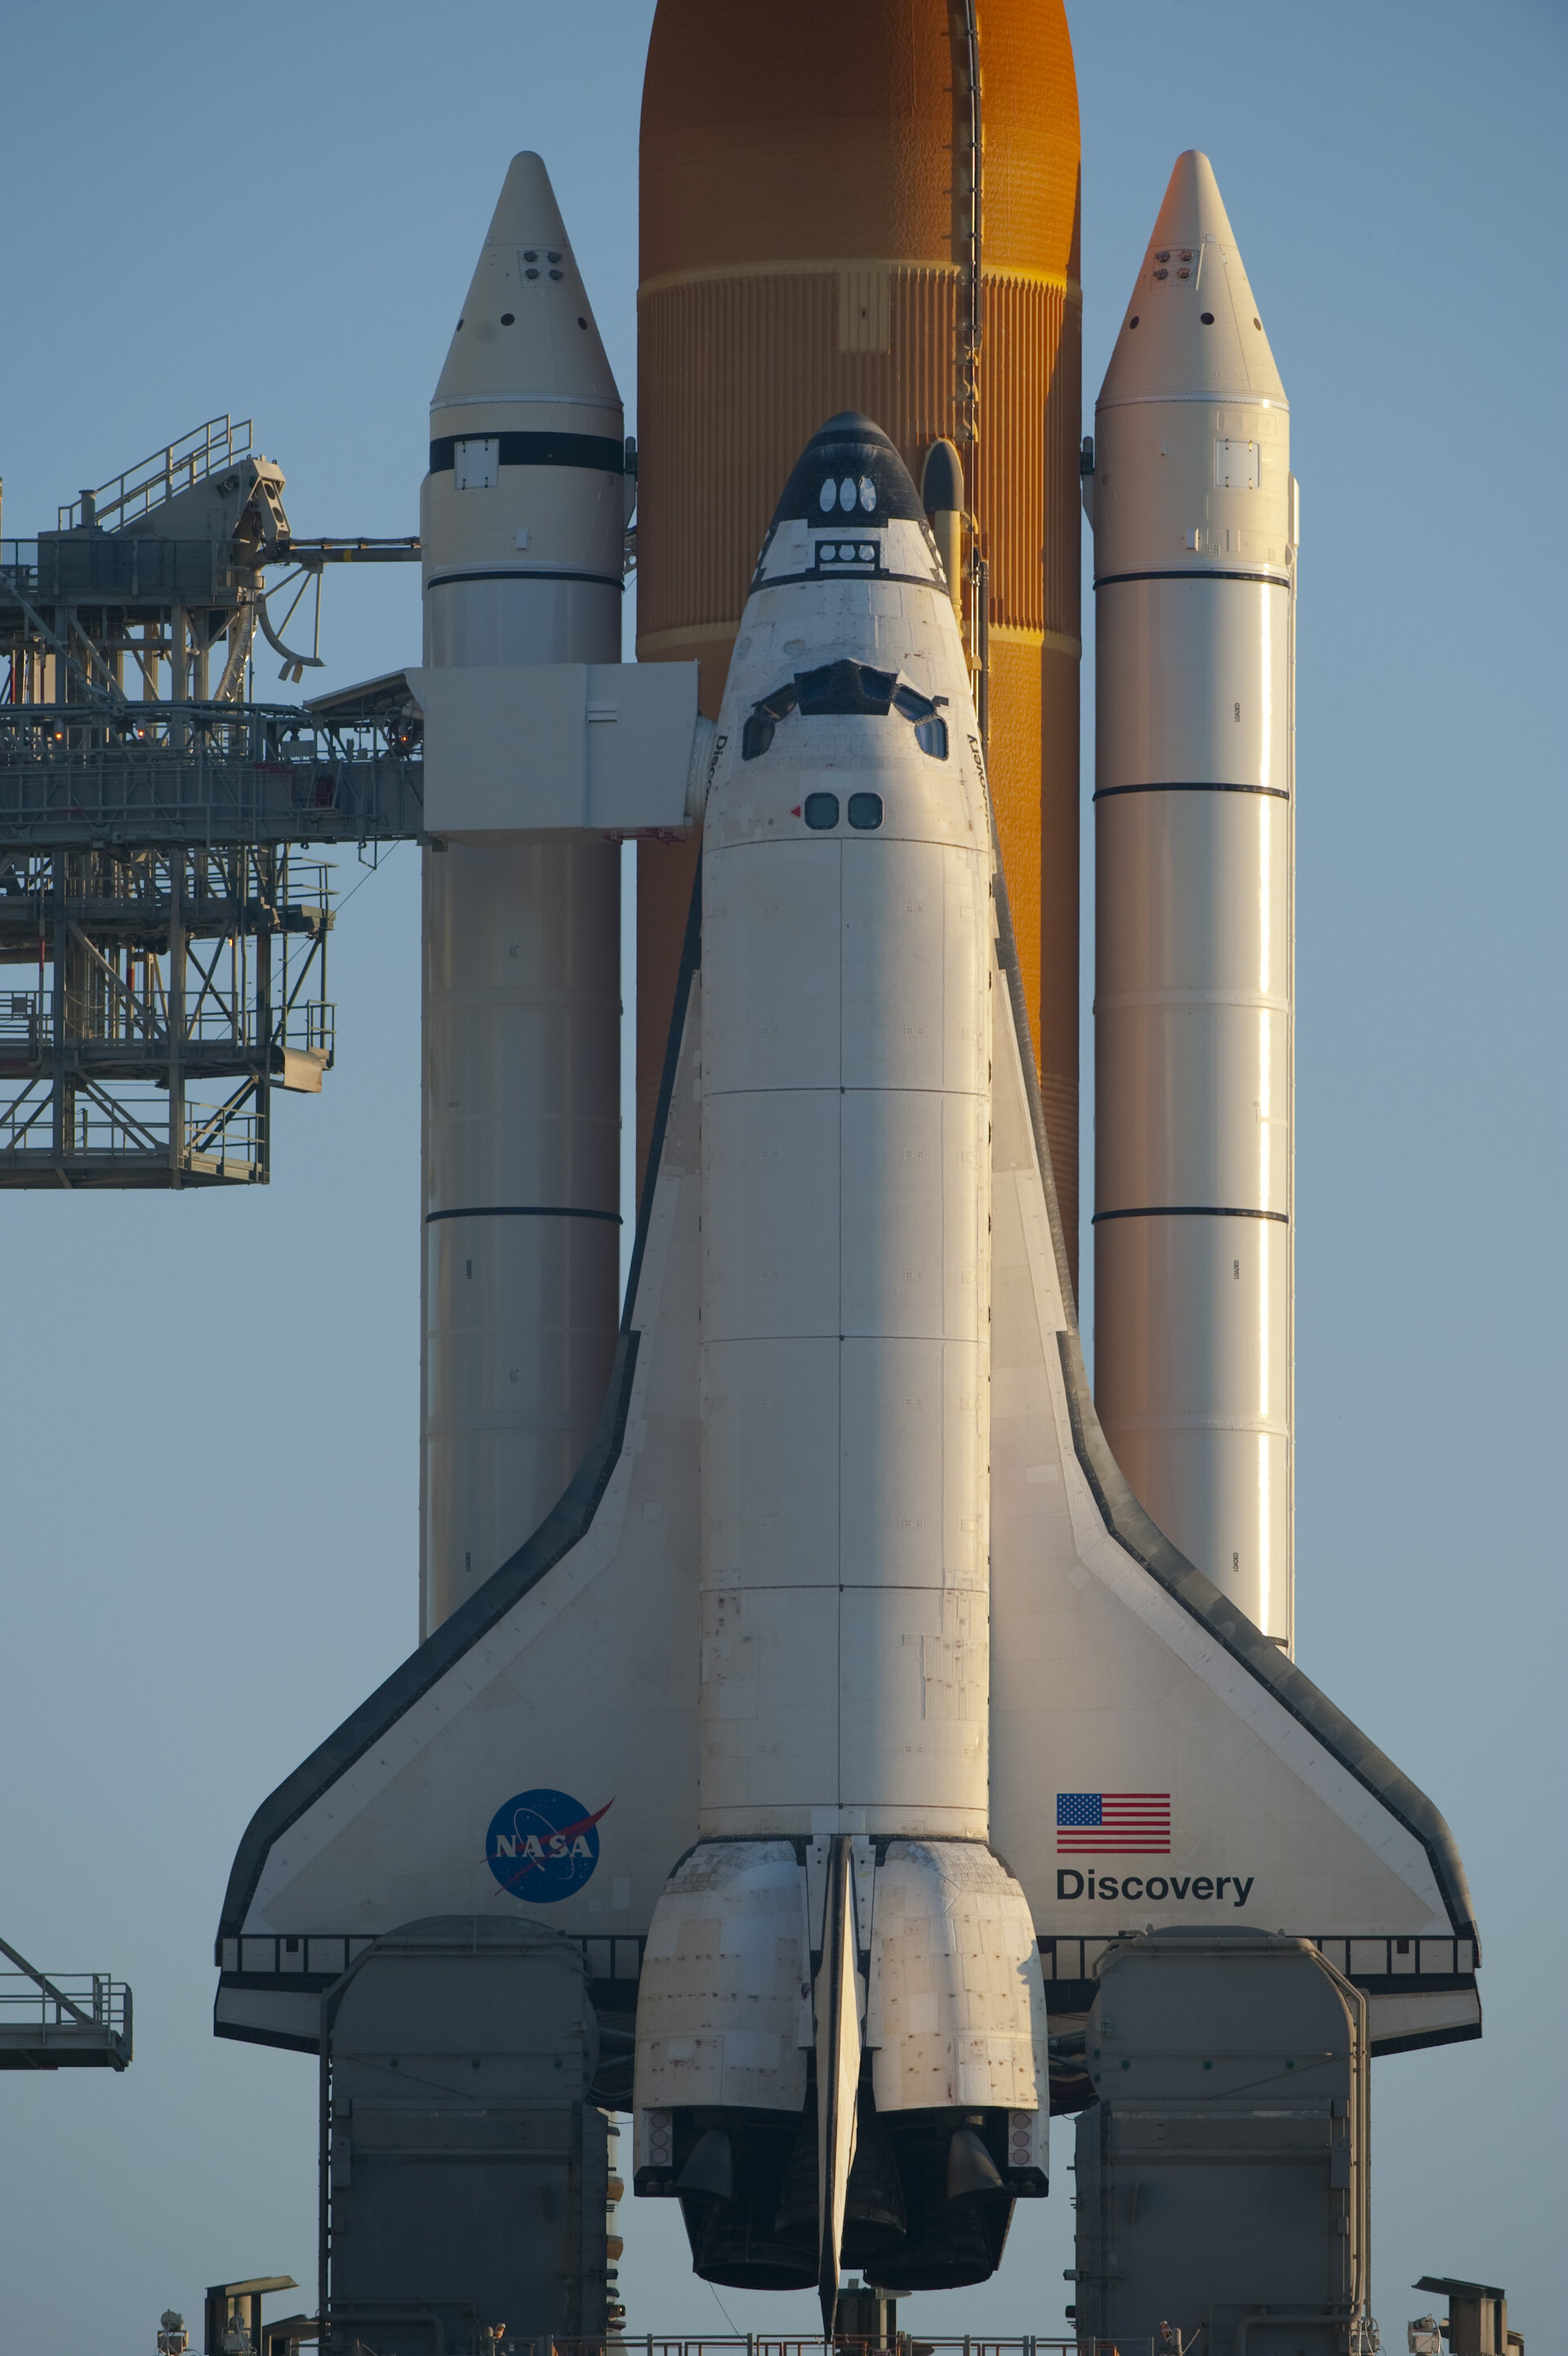 ESA - Space Shuttle Discovery on the launch pad